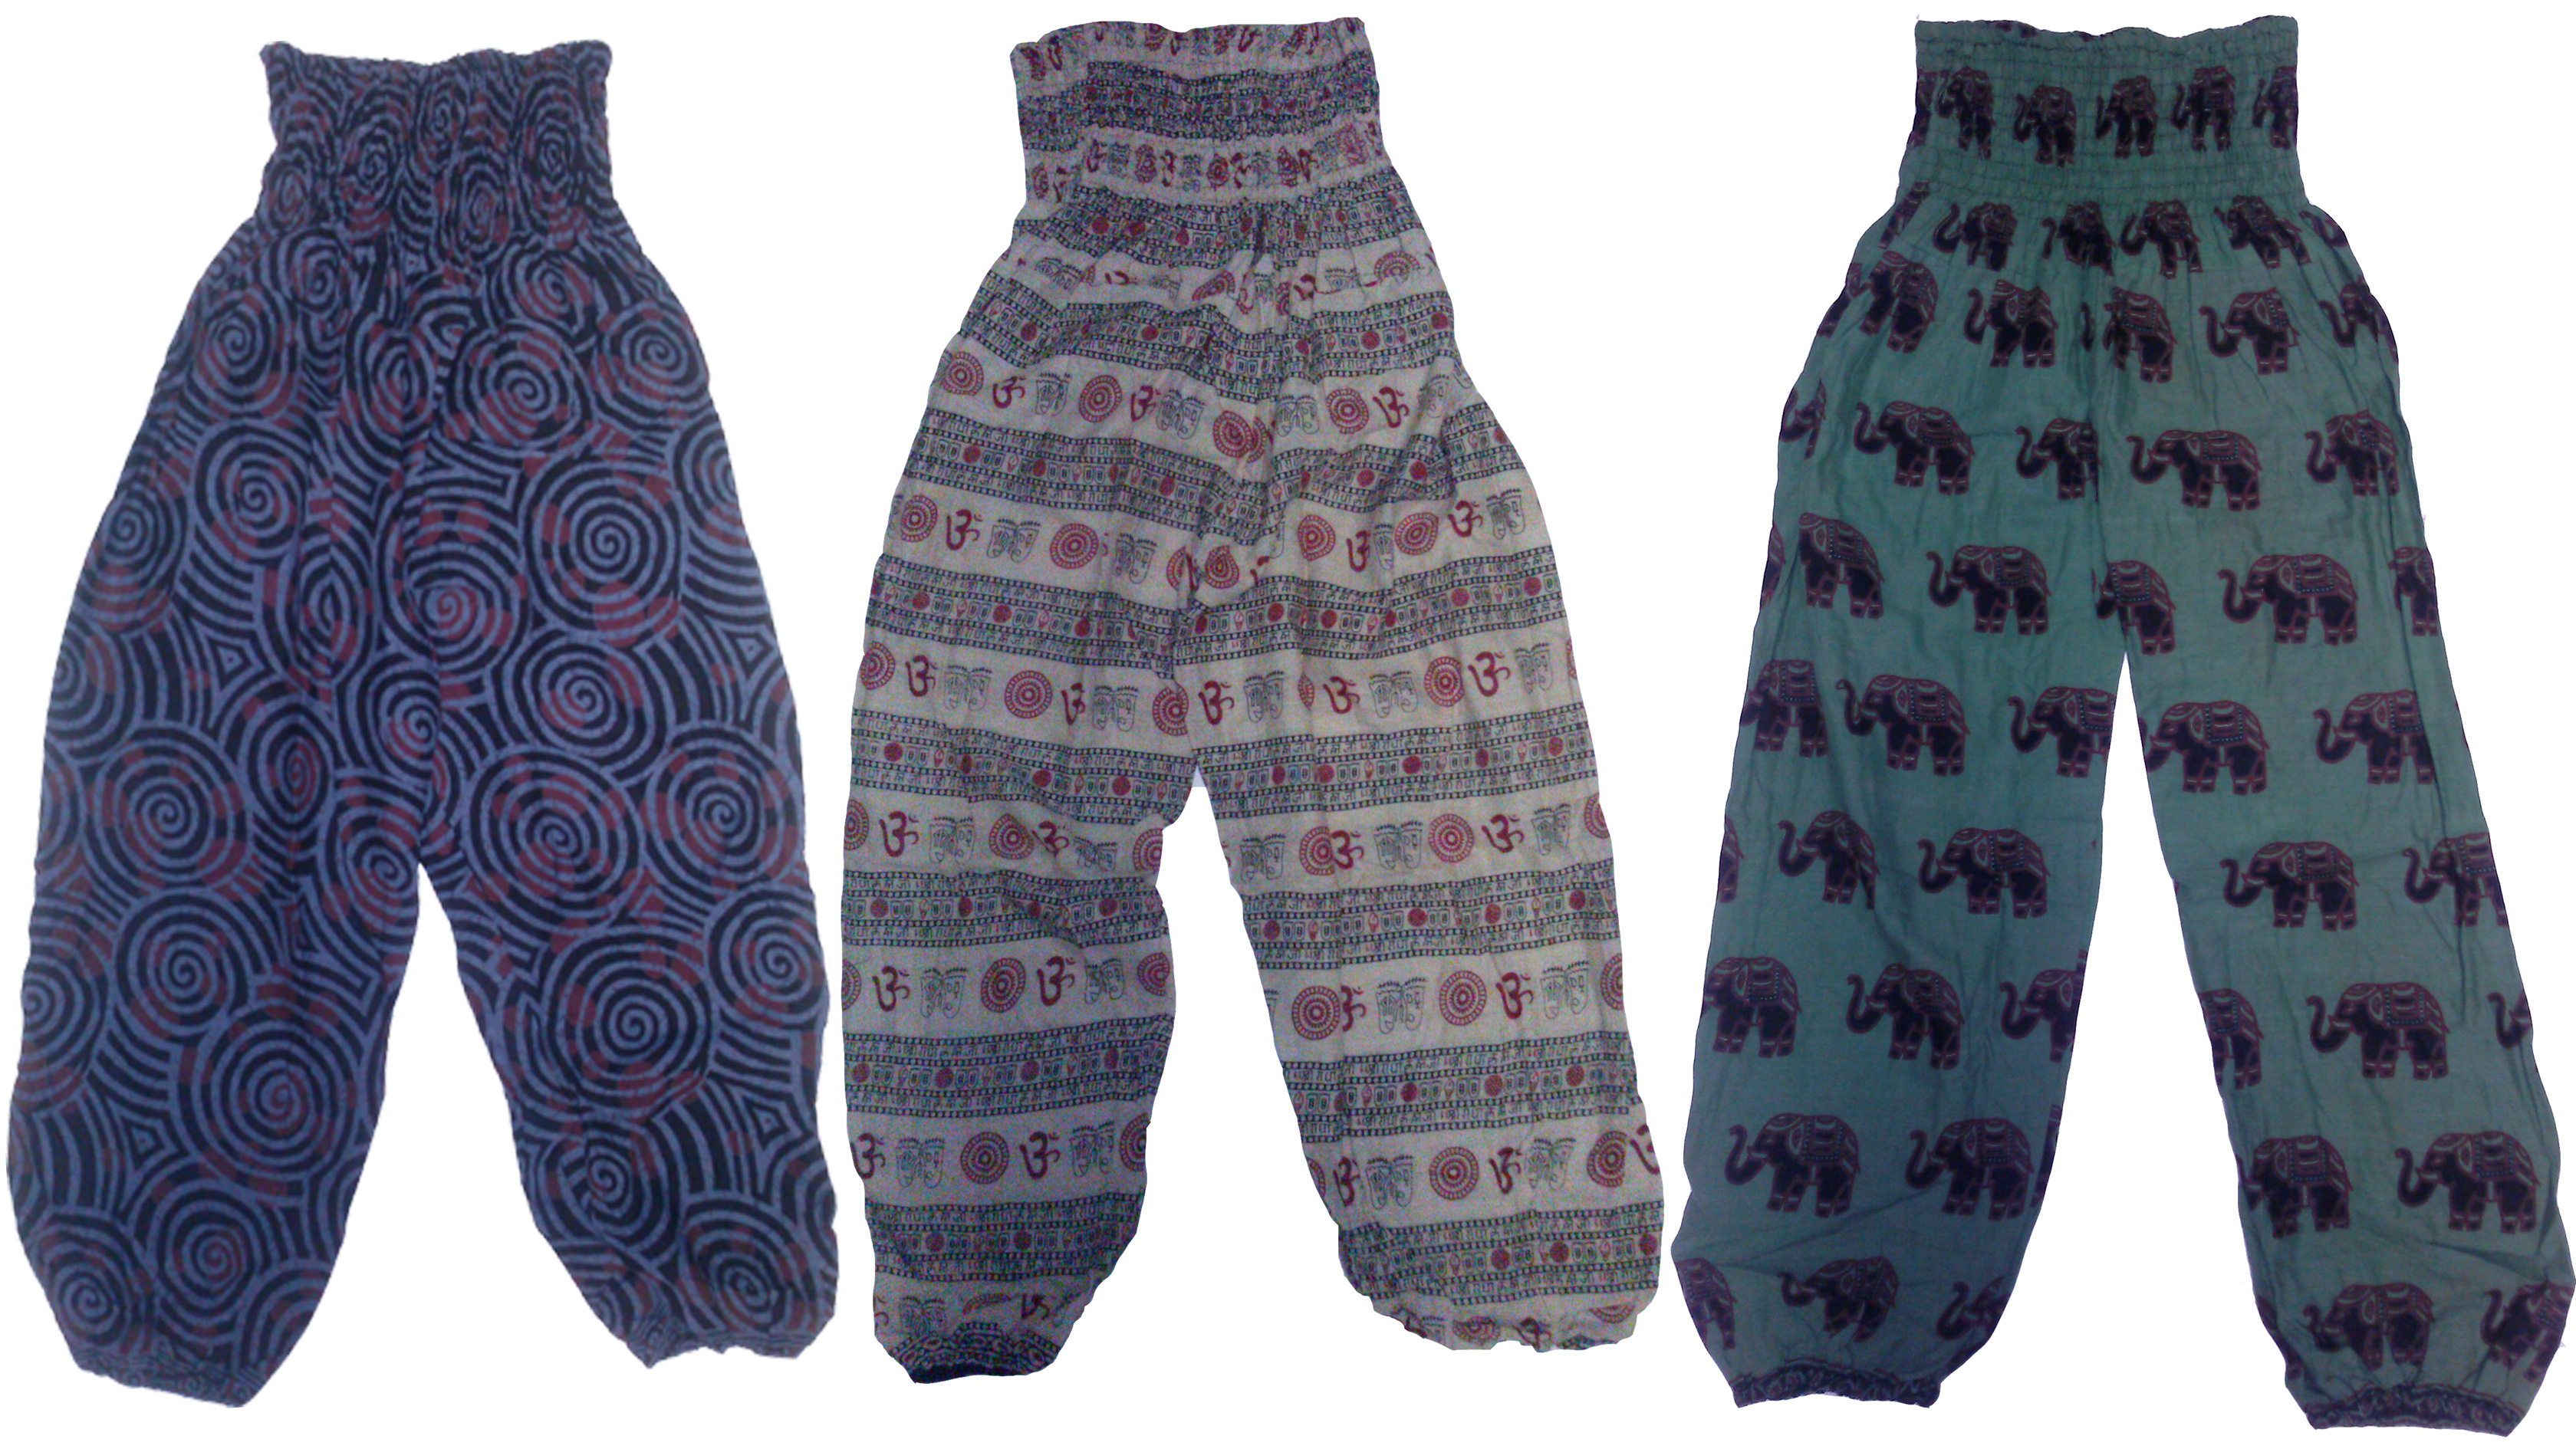 Assorted Print Pajama Pants